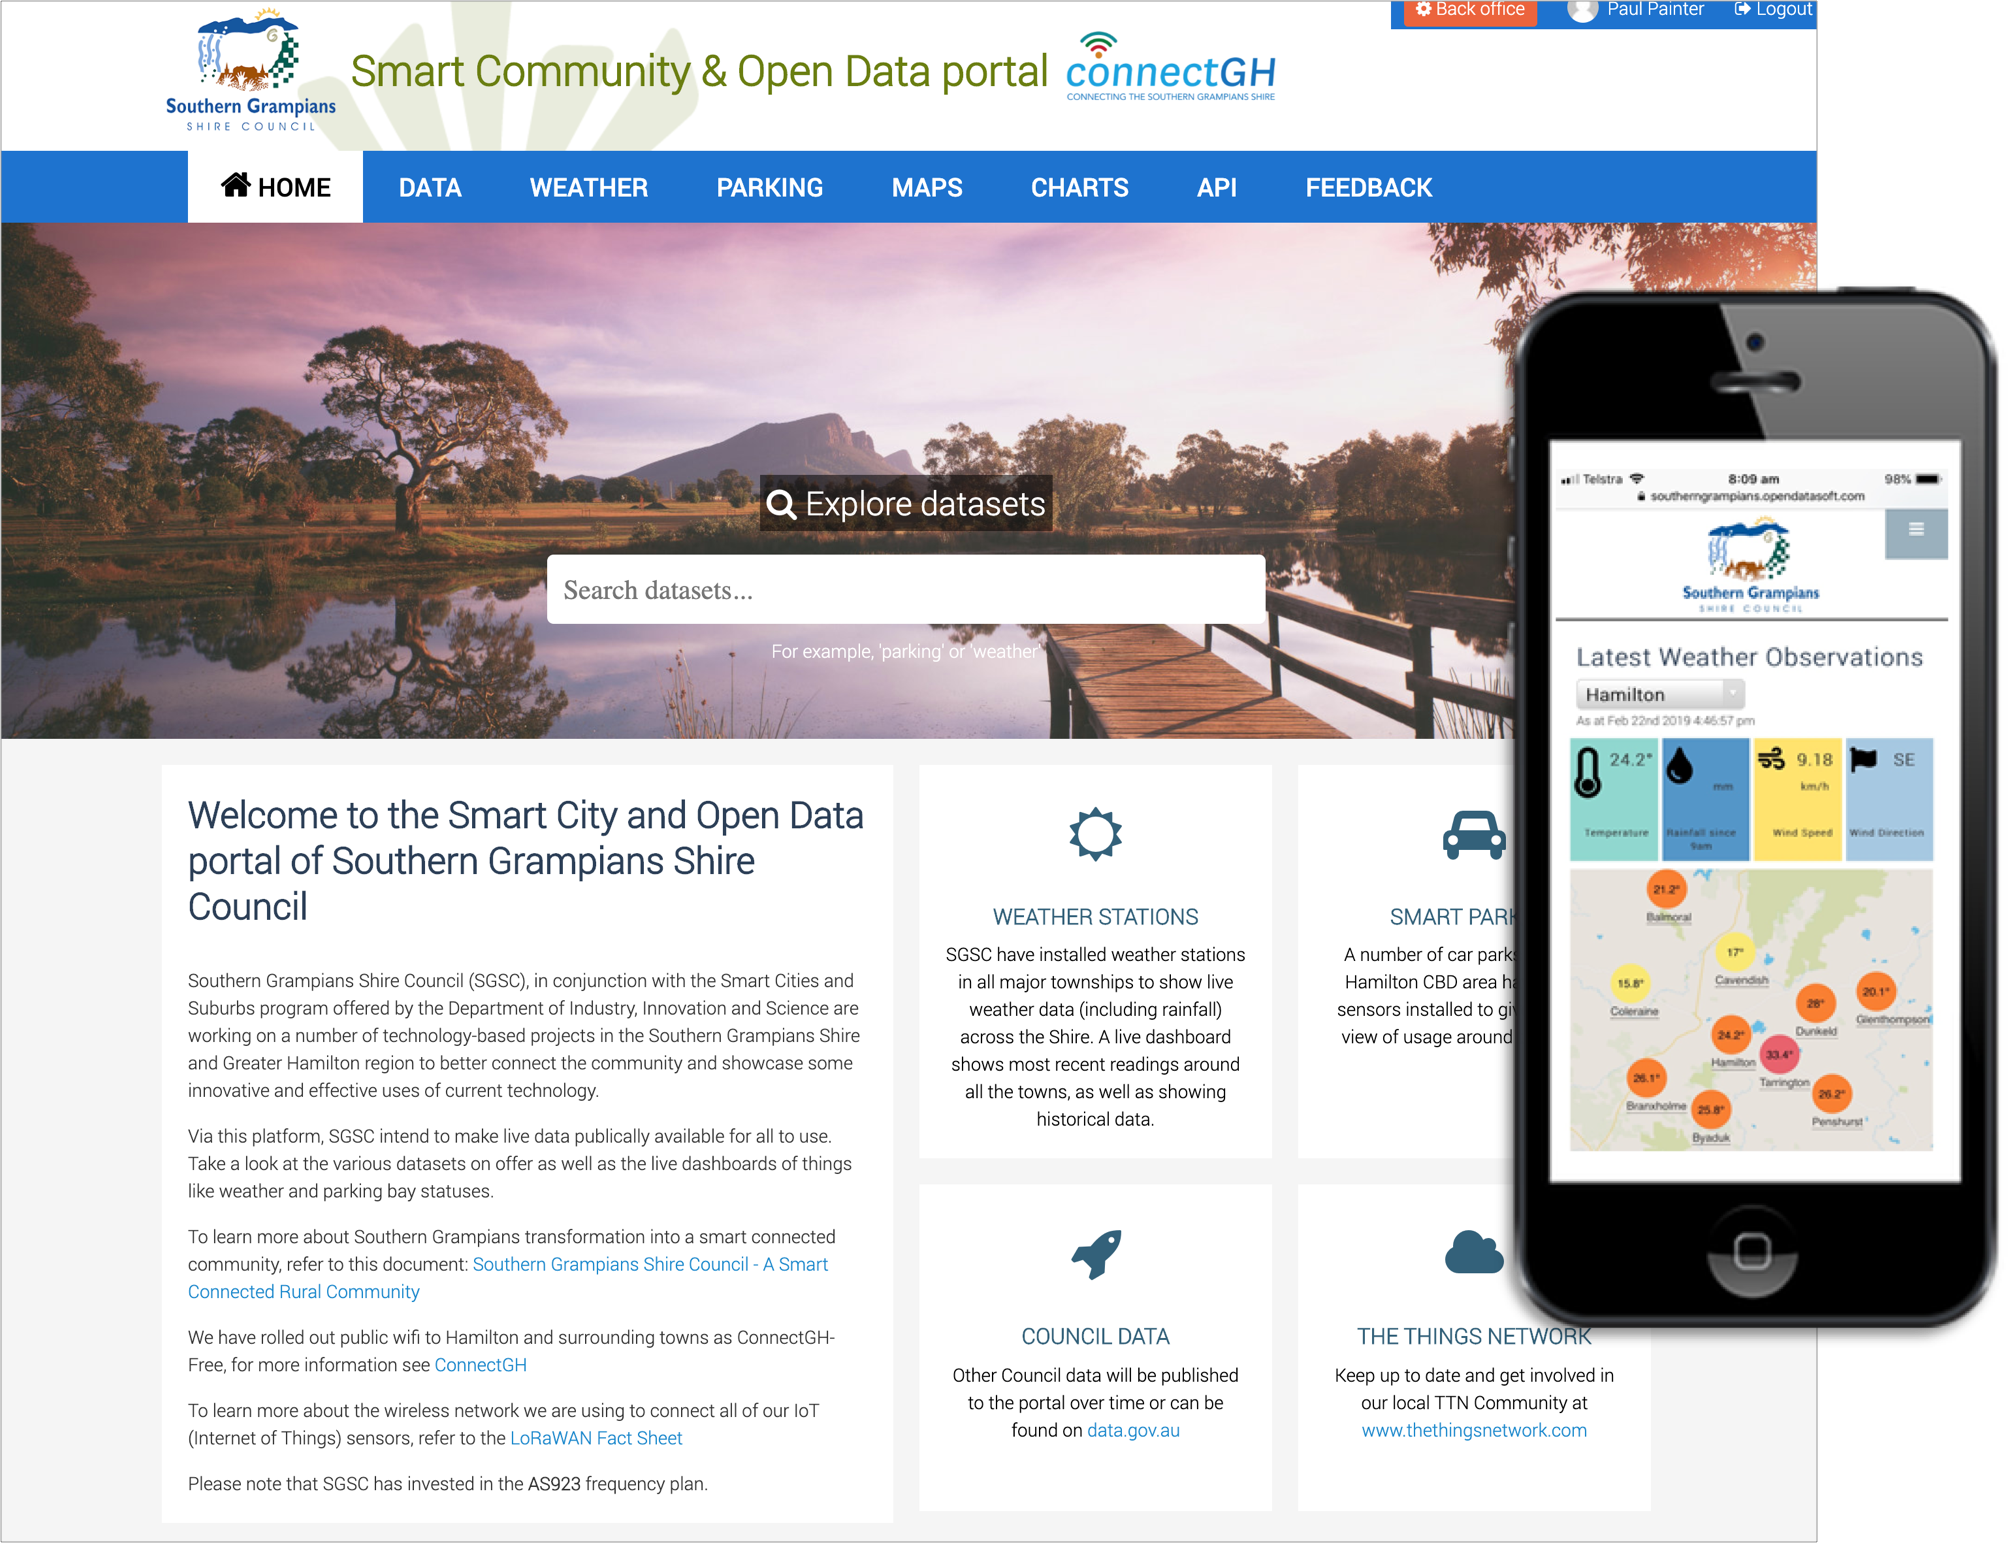 connectGH, an open data portal for the Southern Grampians Shire Council